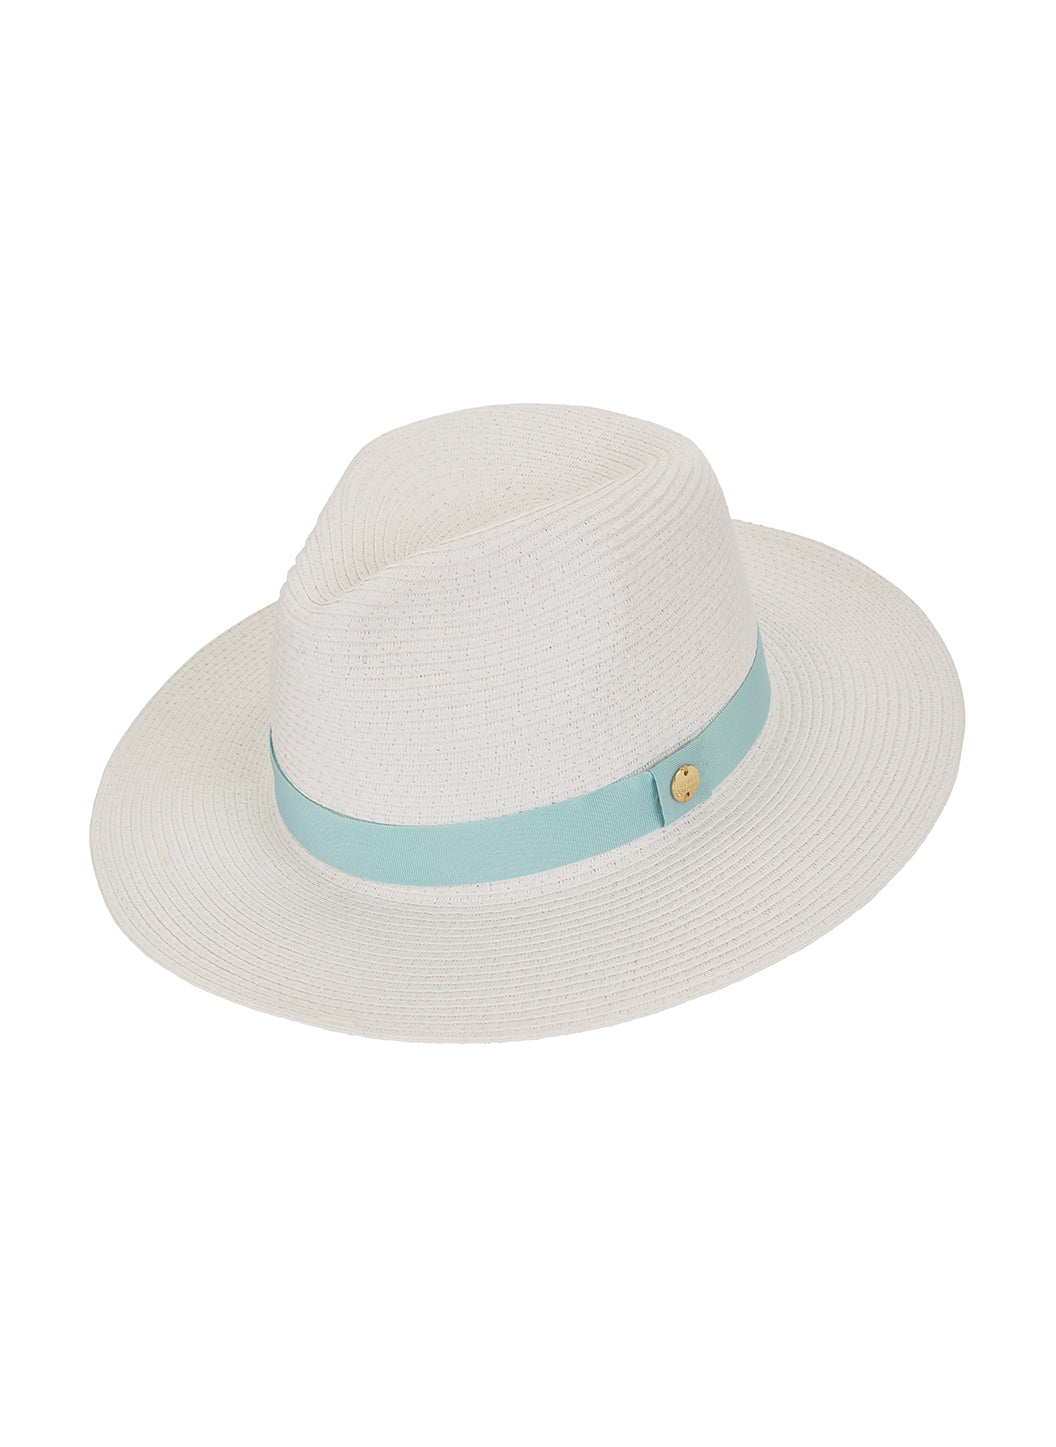 Fedora Hat White Mint - Melissa Odabash Accessories